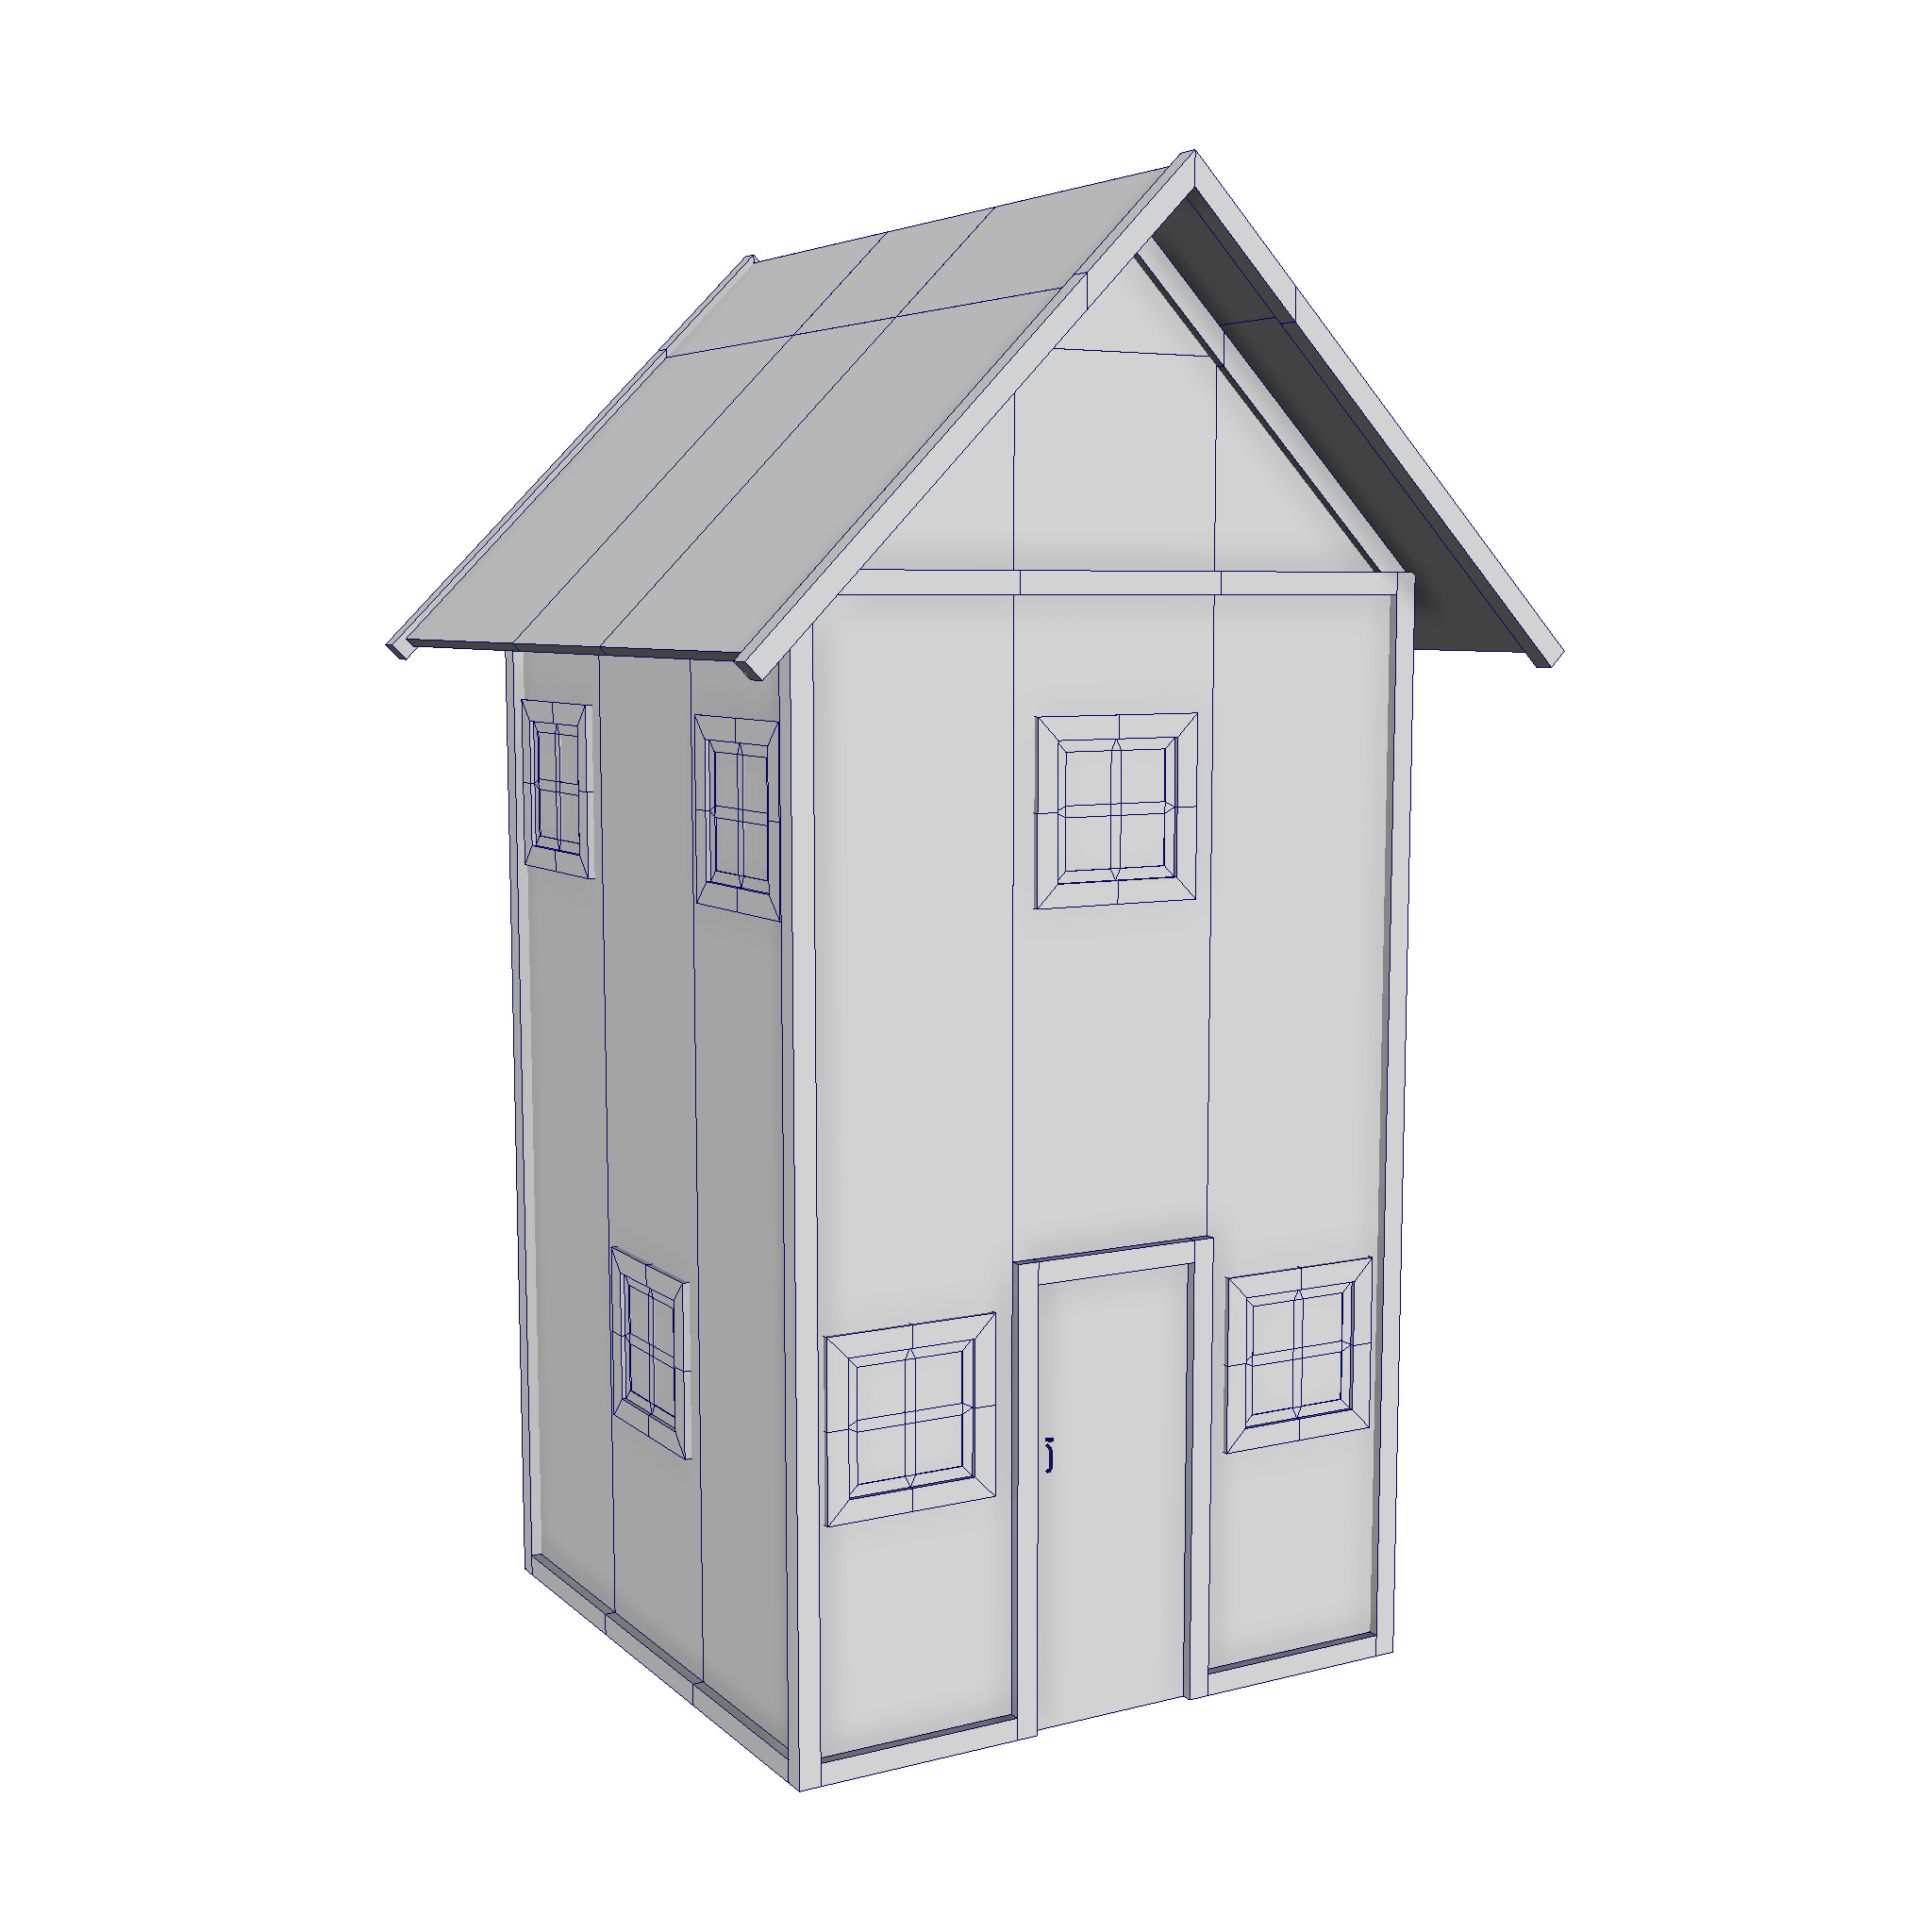 modular wood house set 3d model fbx ma mb 271442